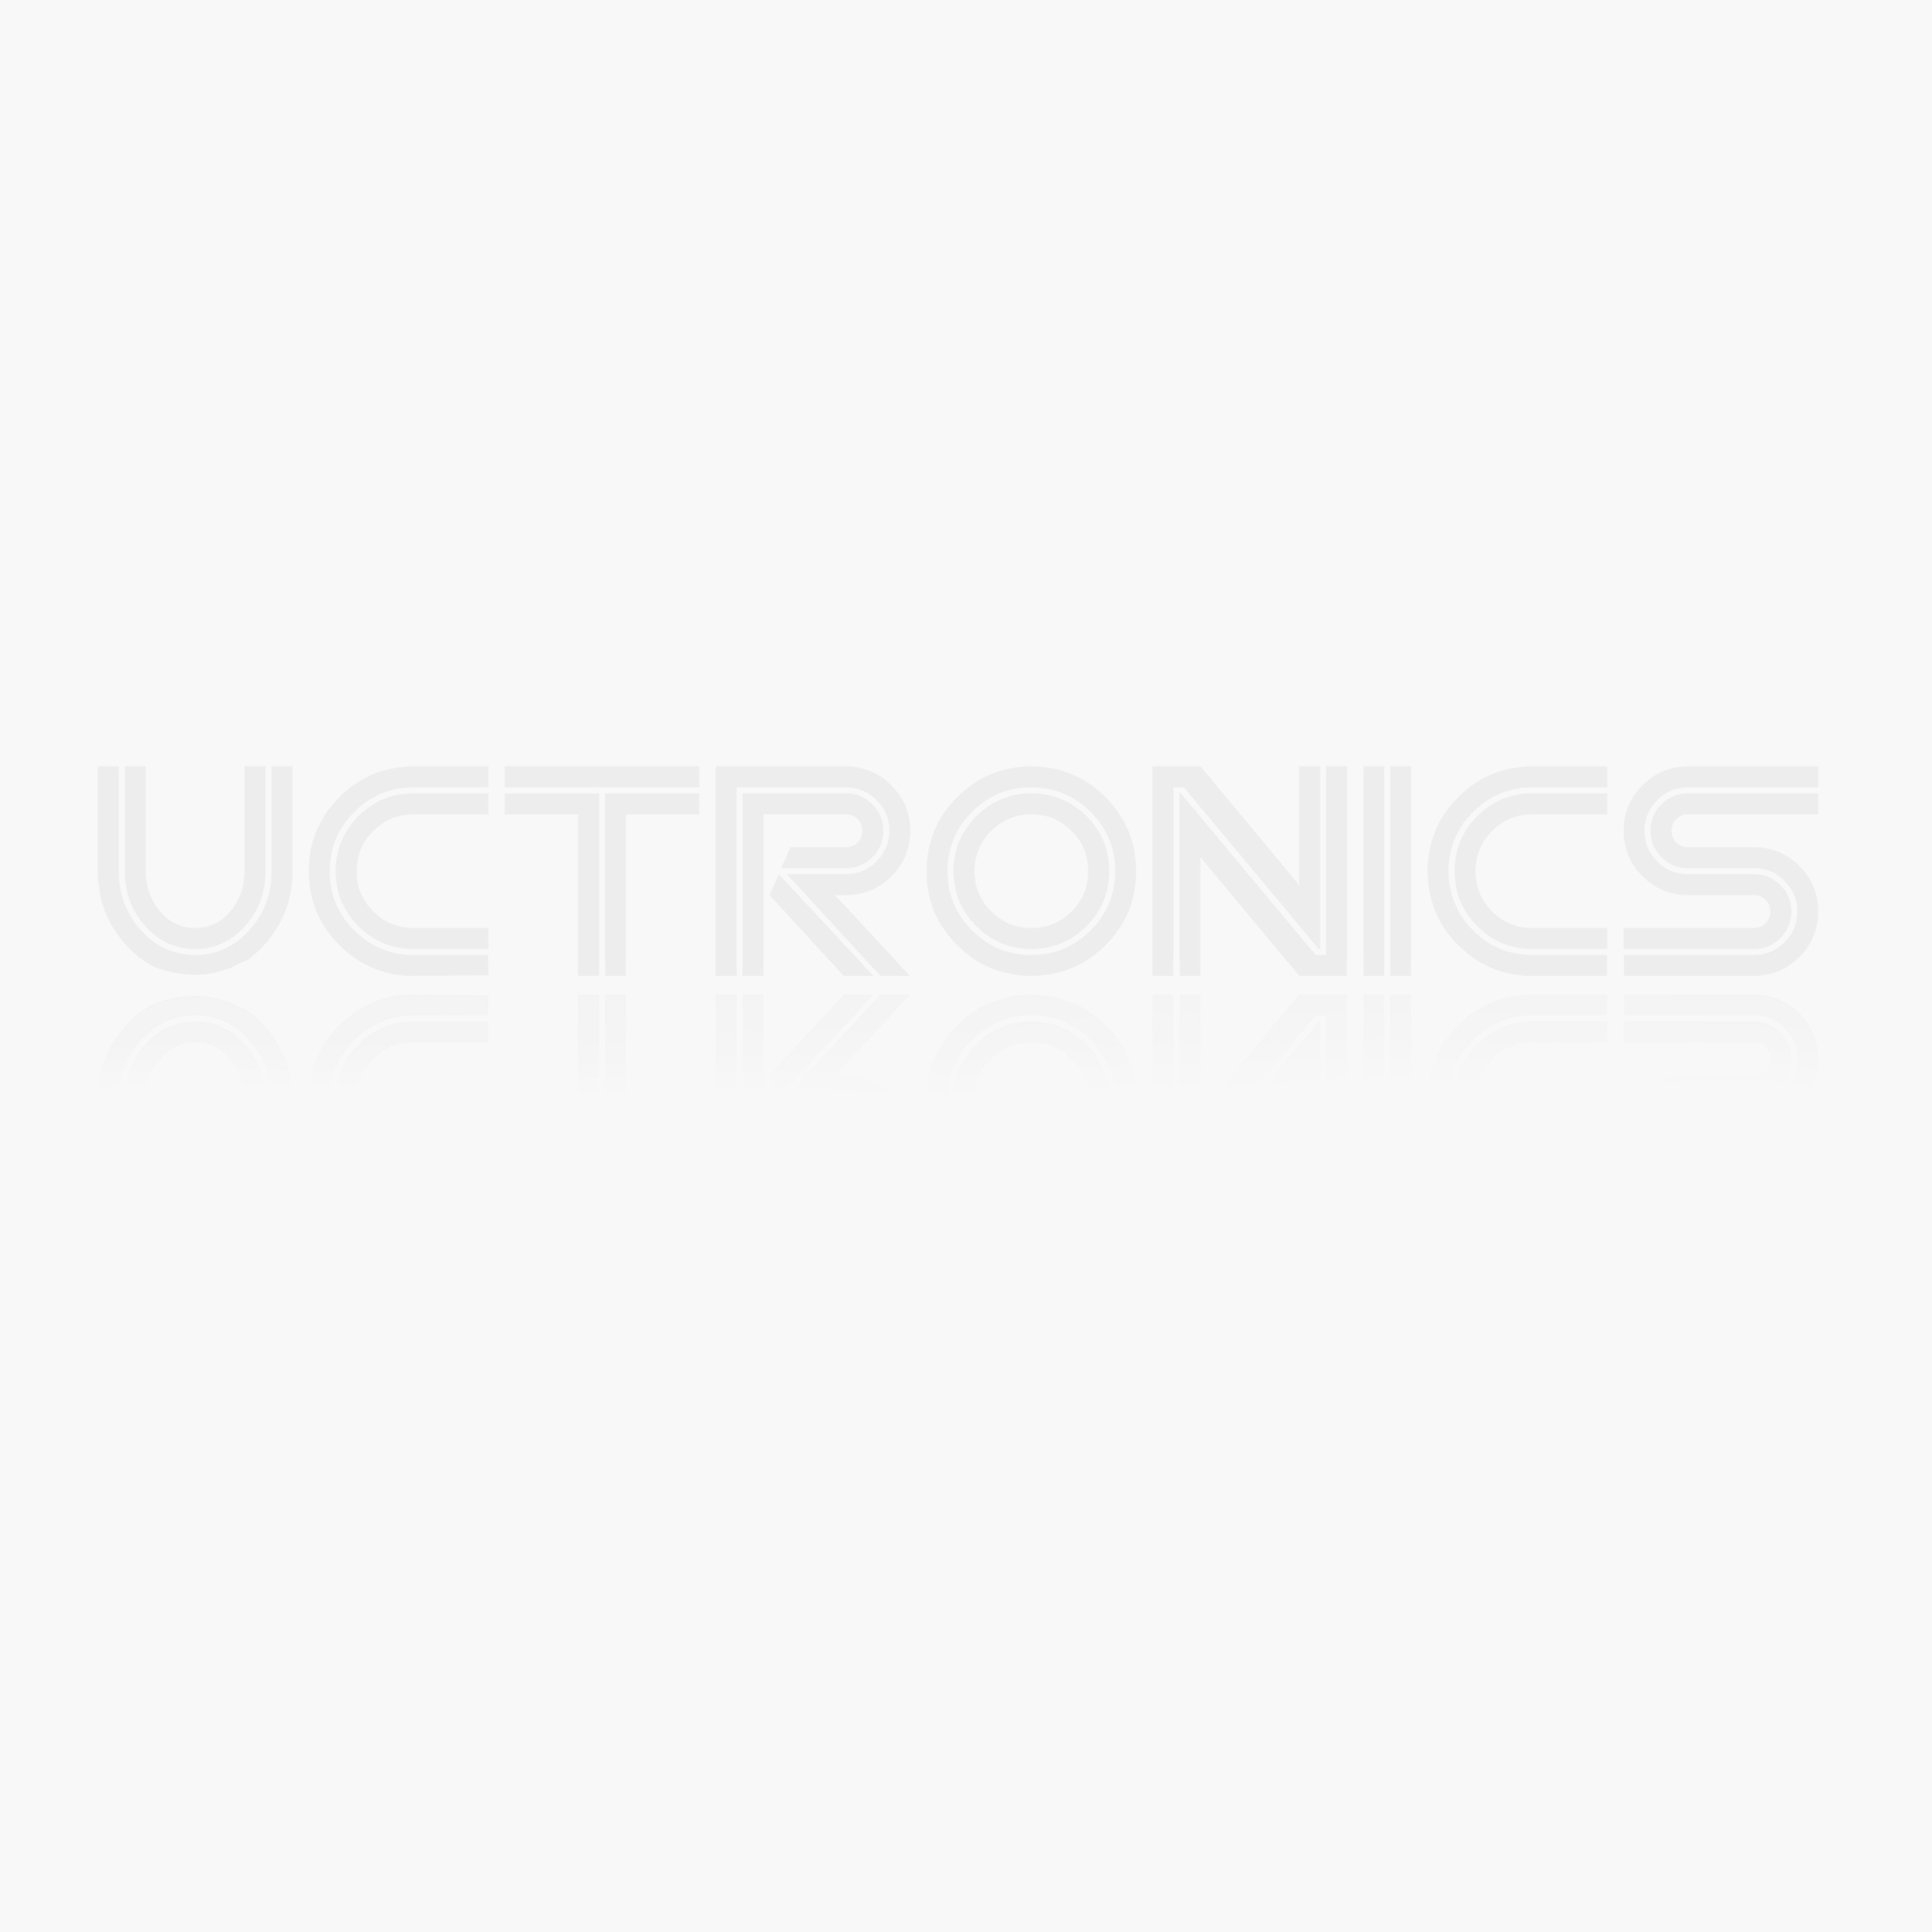 Uctronics smart robot car kit for arduino automatic avoidance of uctronics smart robot car kit for arduino automatic avoidance of obstacles with uno r3 malvernweather Images